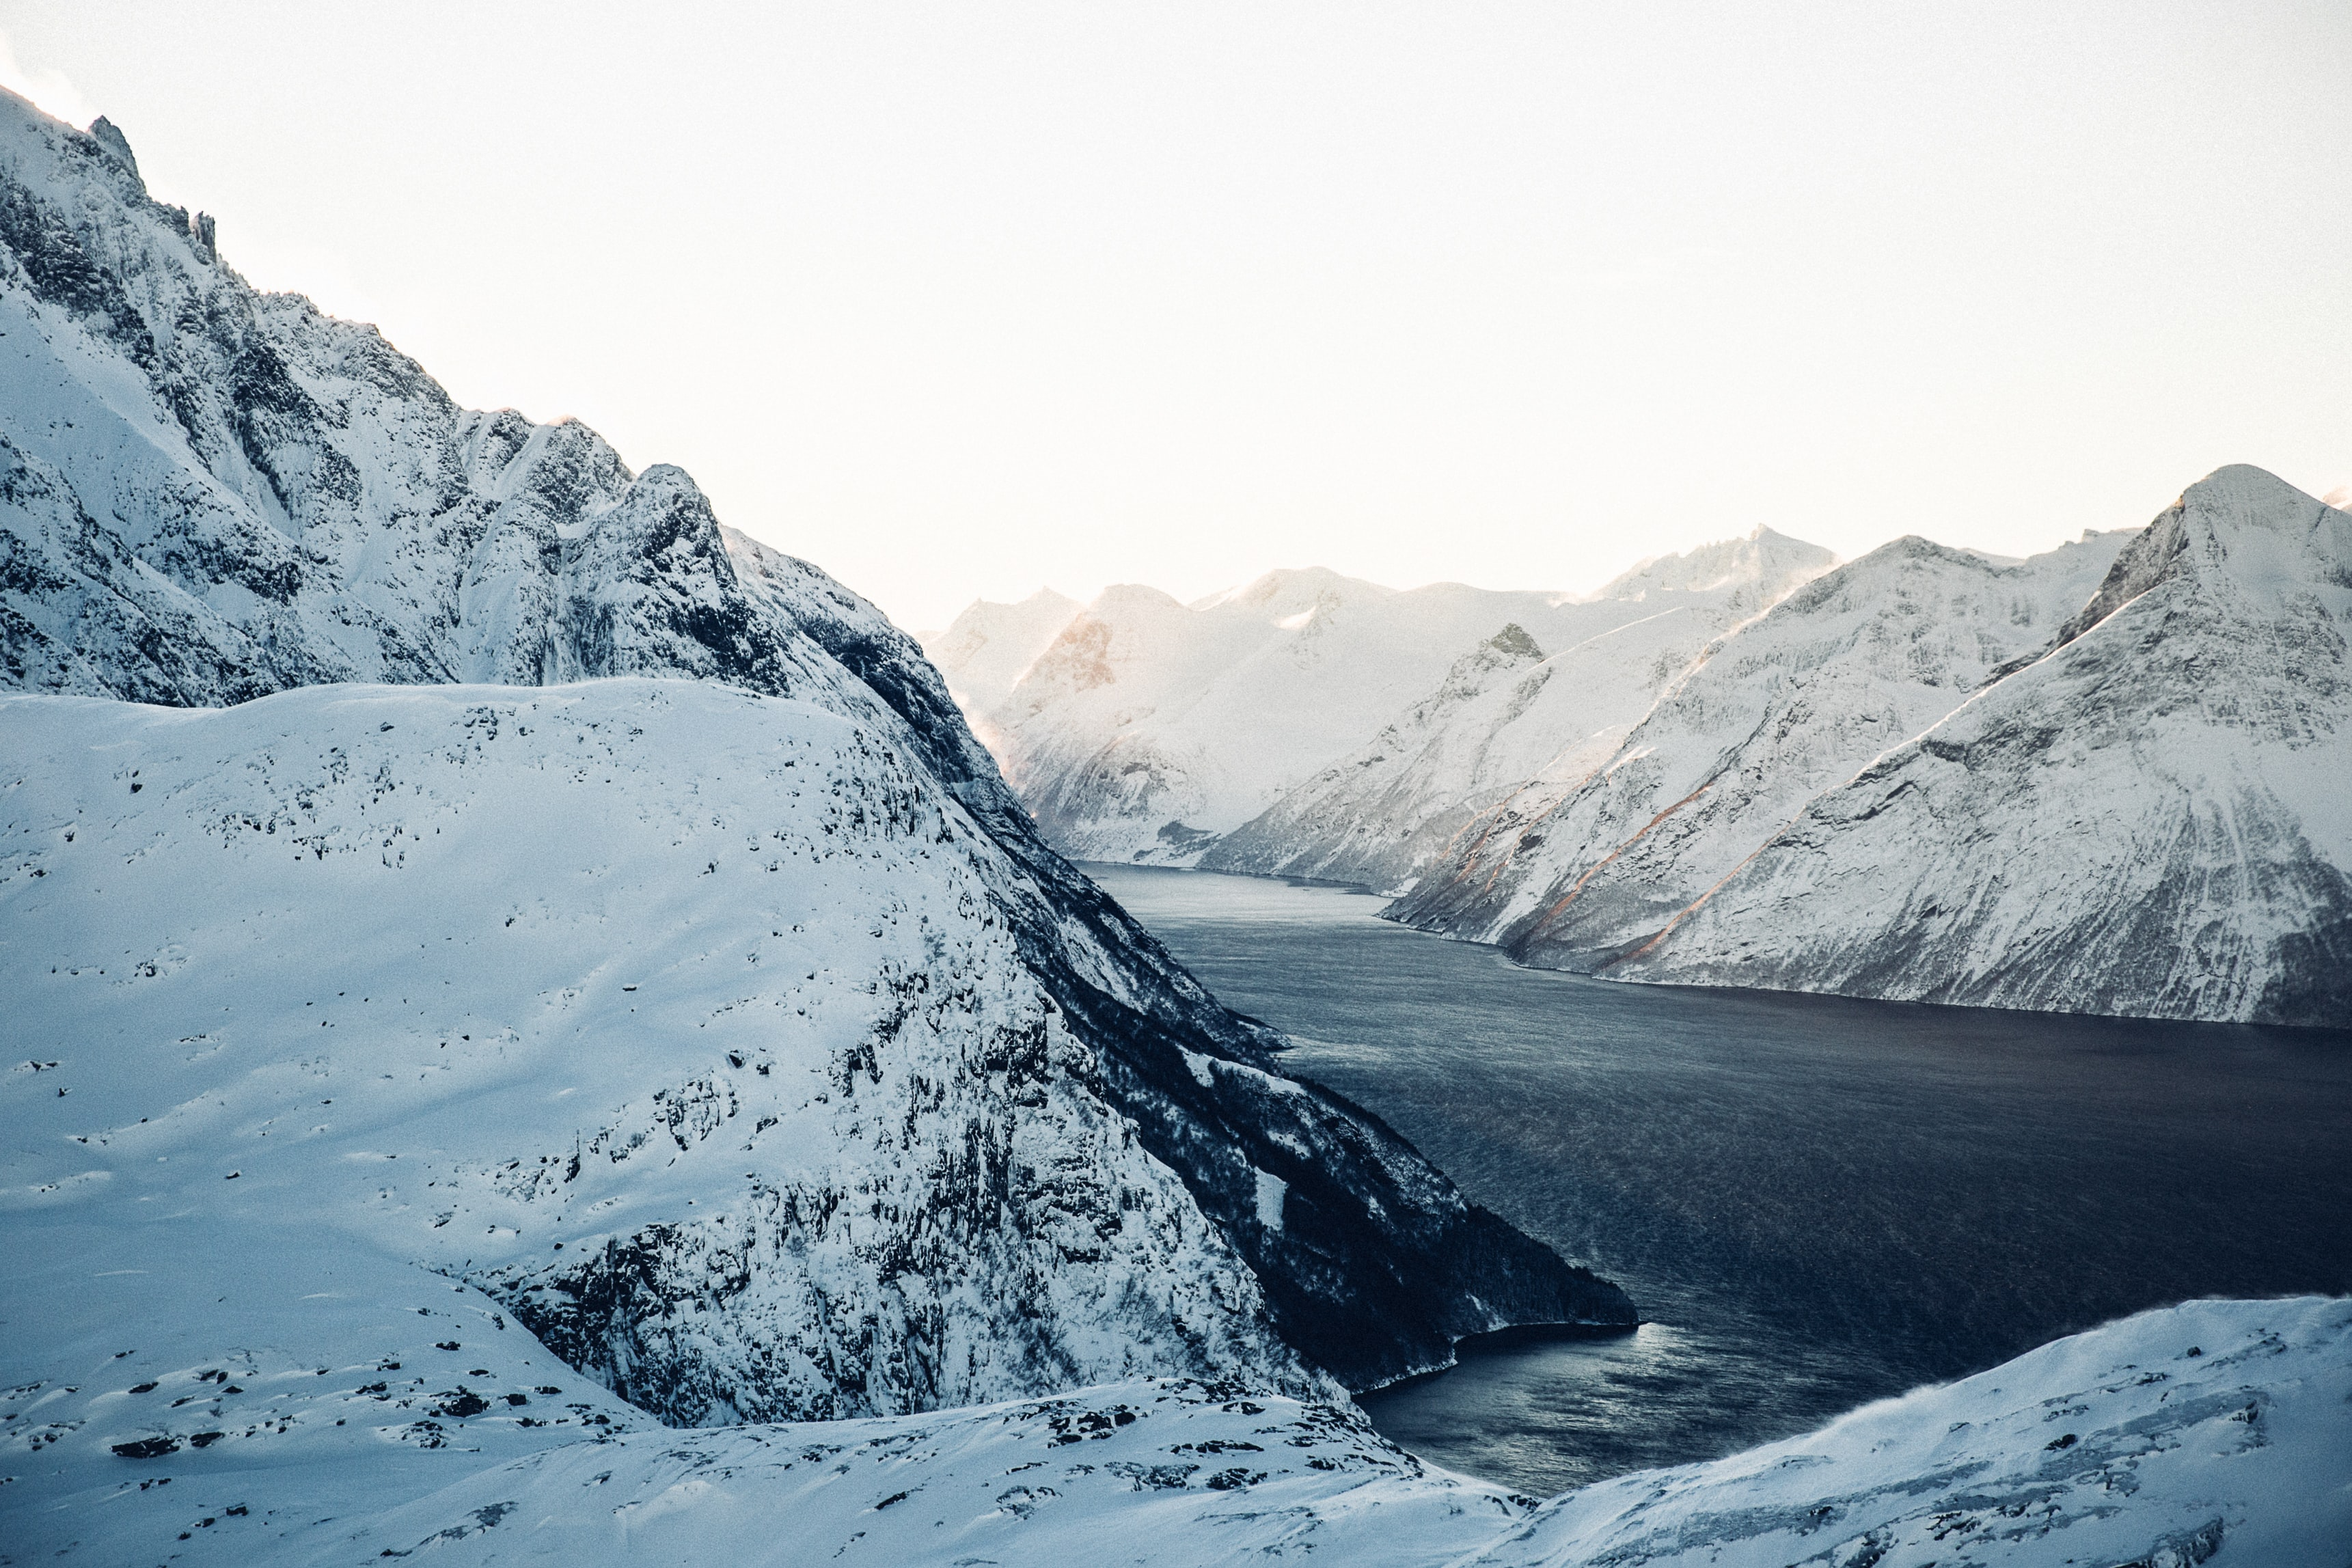 landscape photography of snow-coated mountains near body of water during daytime